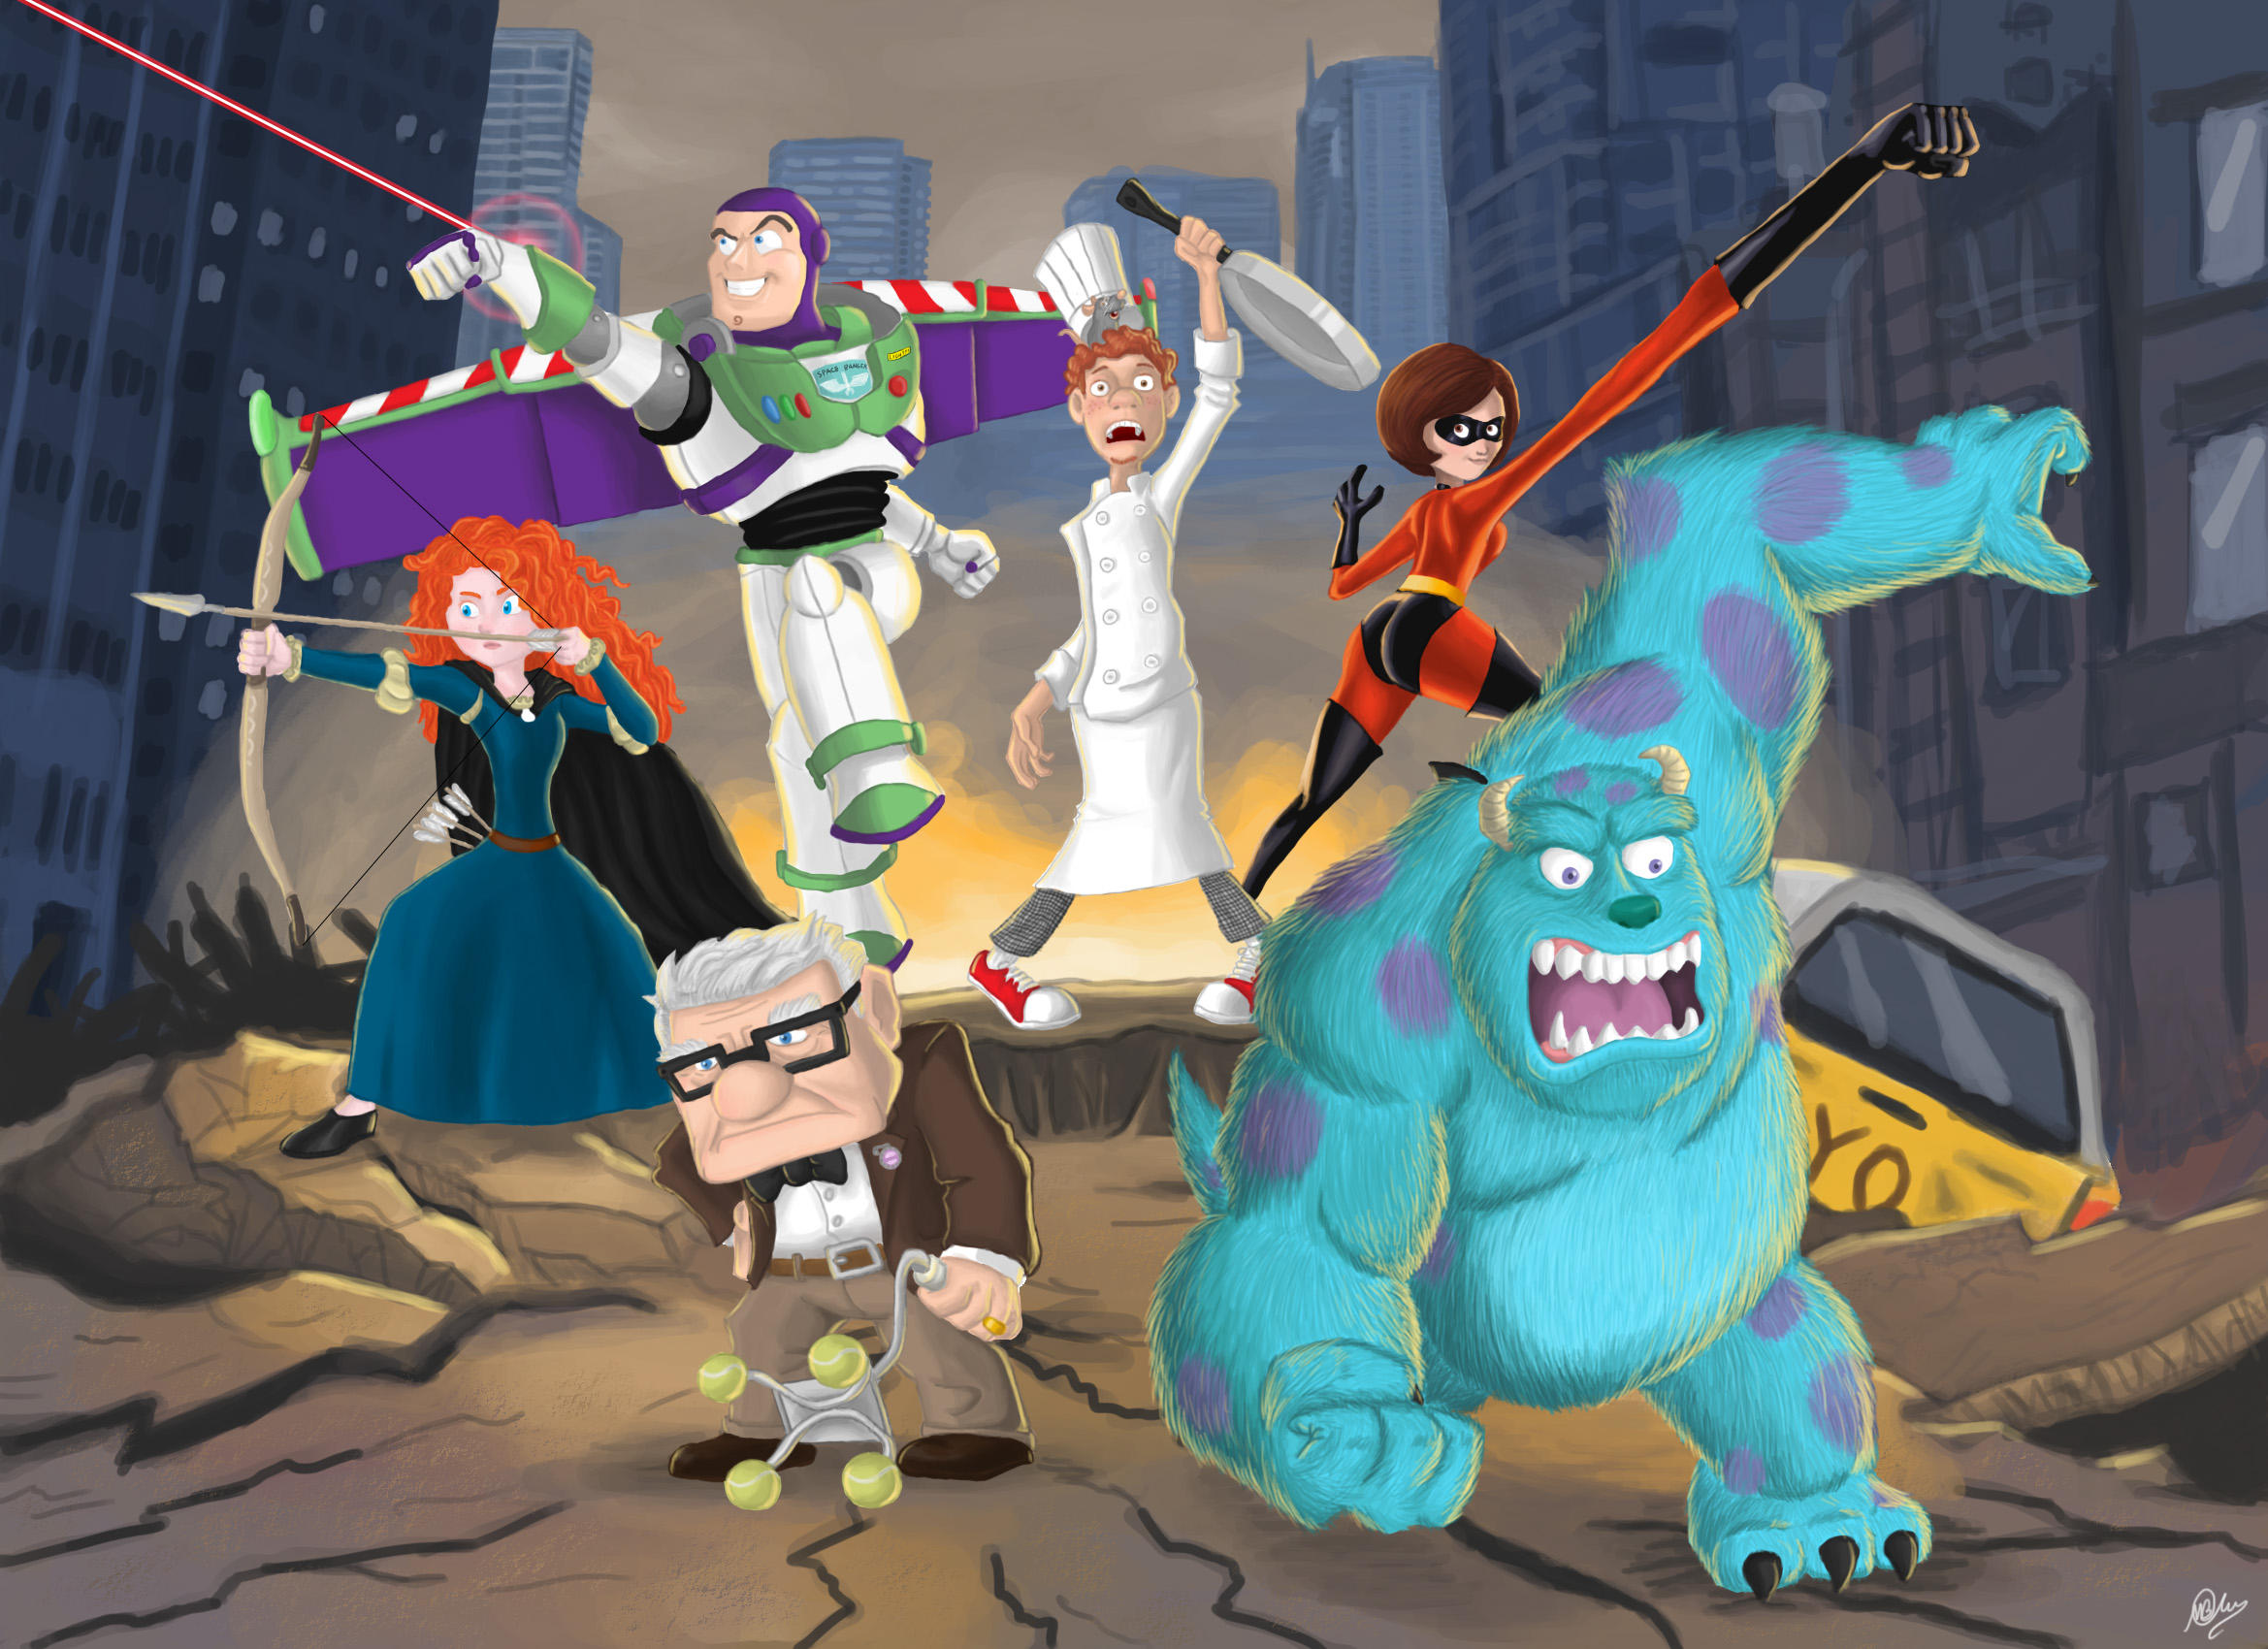 Pixar Avengers by MatheusBOliveira